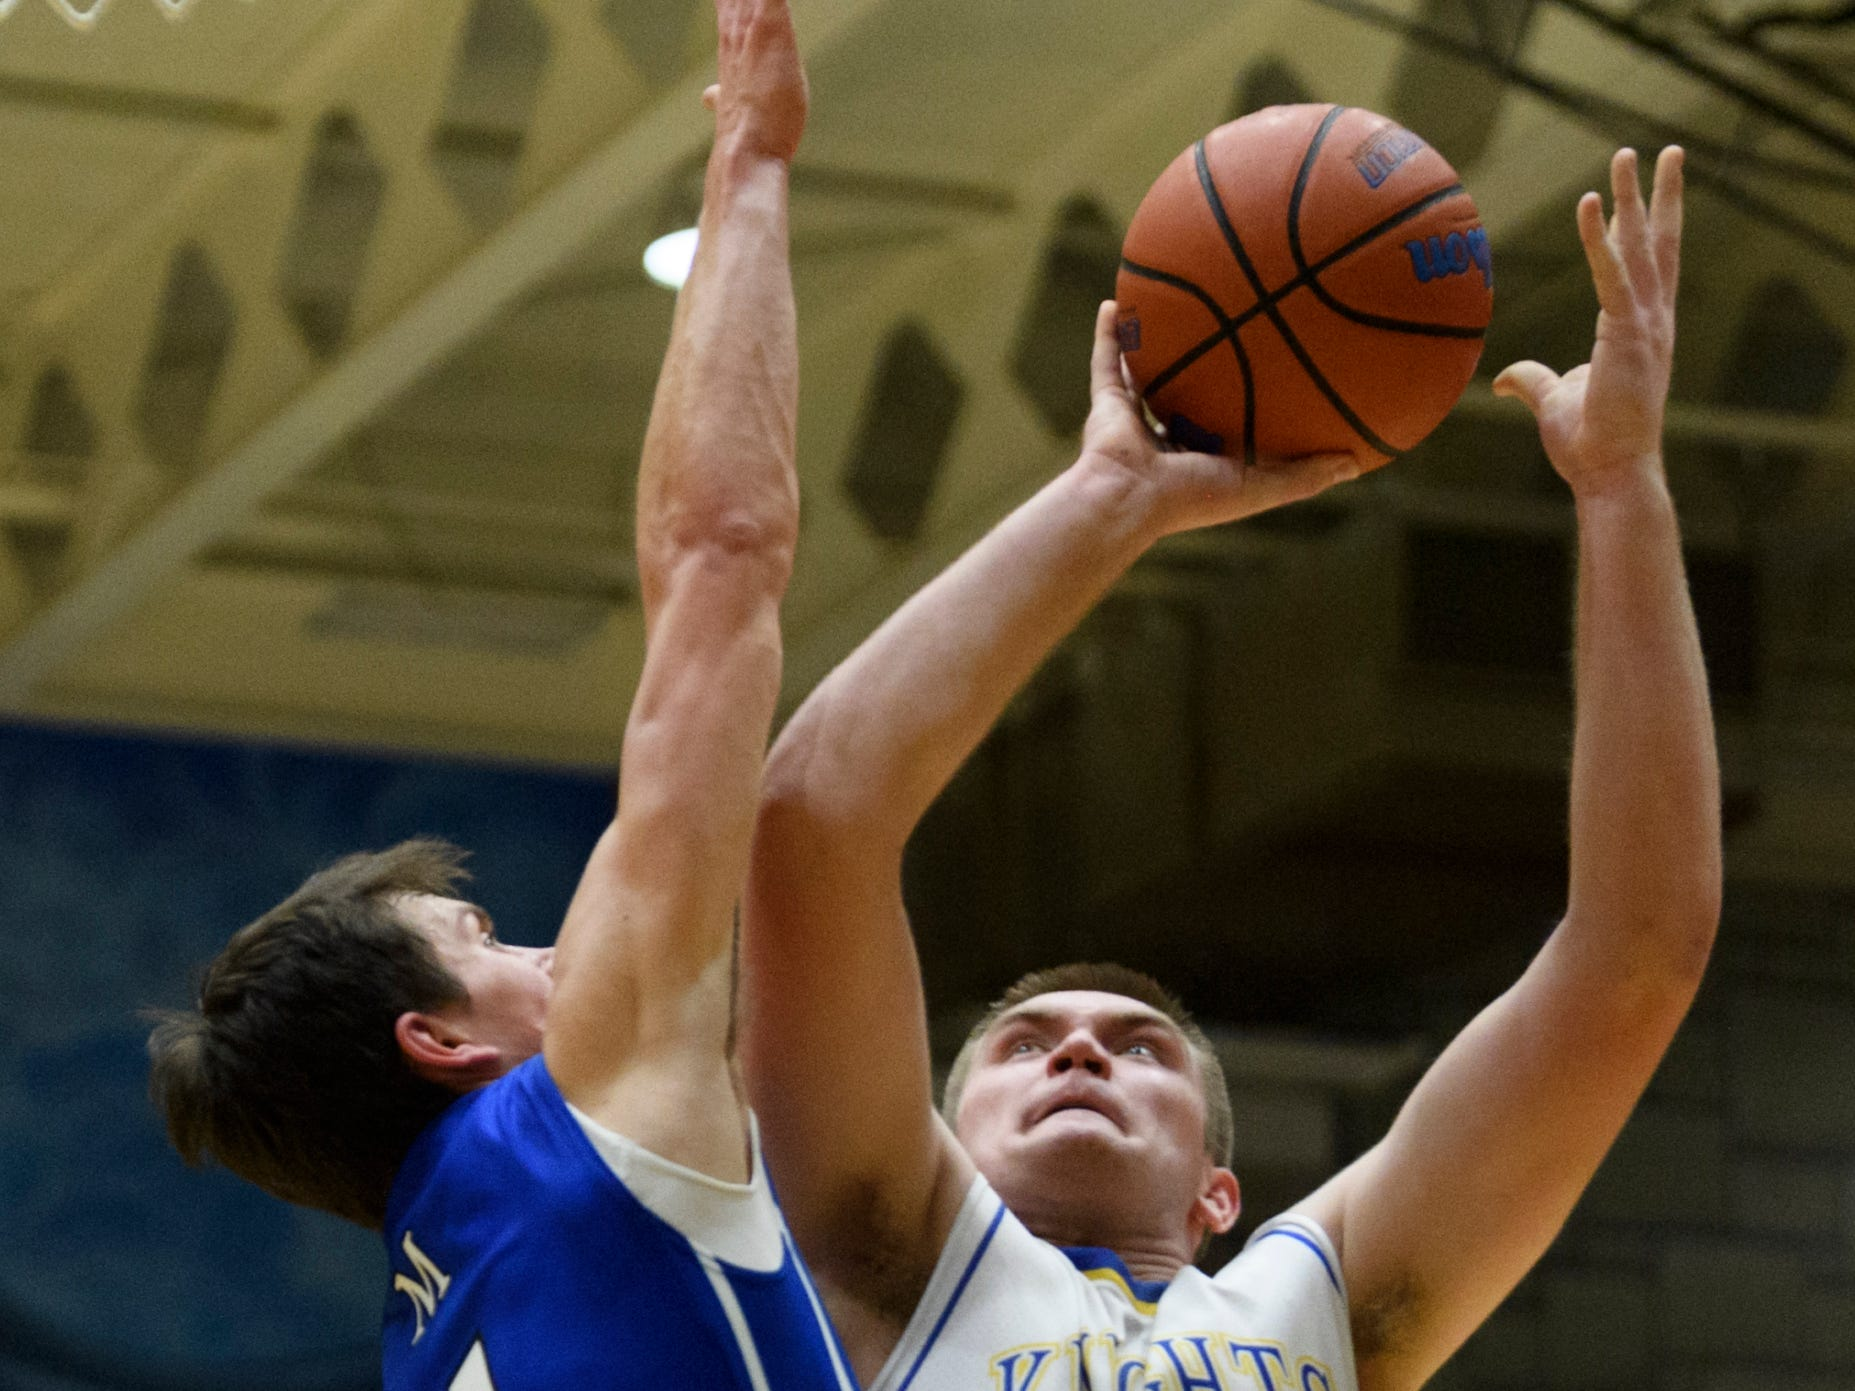 Memorial's Justin Waiz (4) blocks Castle's Brodey Heaton (44) from the net during the fourth quarter at Castle High School in Newburgh, Ind., Friday, Jan. 4, 2019. The Knights defeated the Tigers, 72-43.